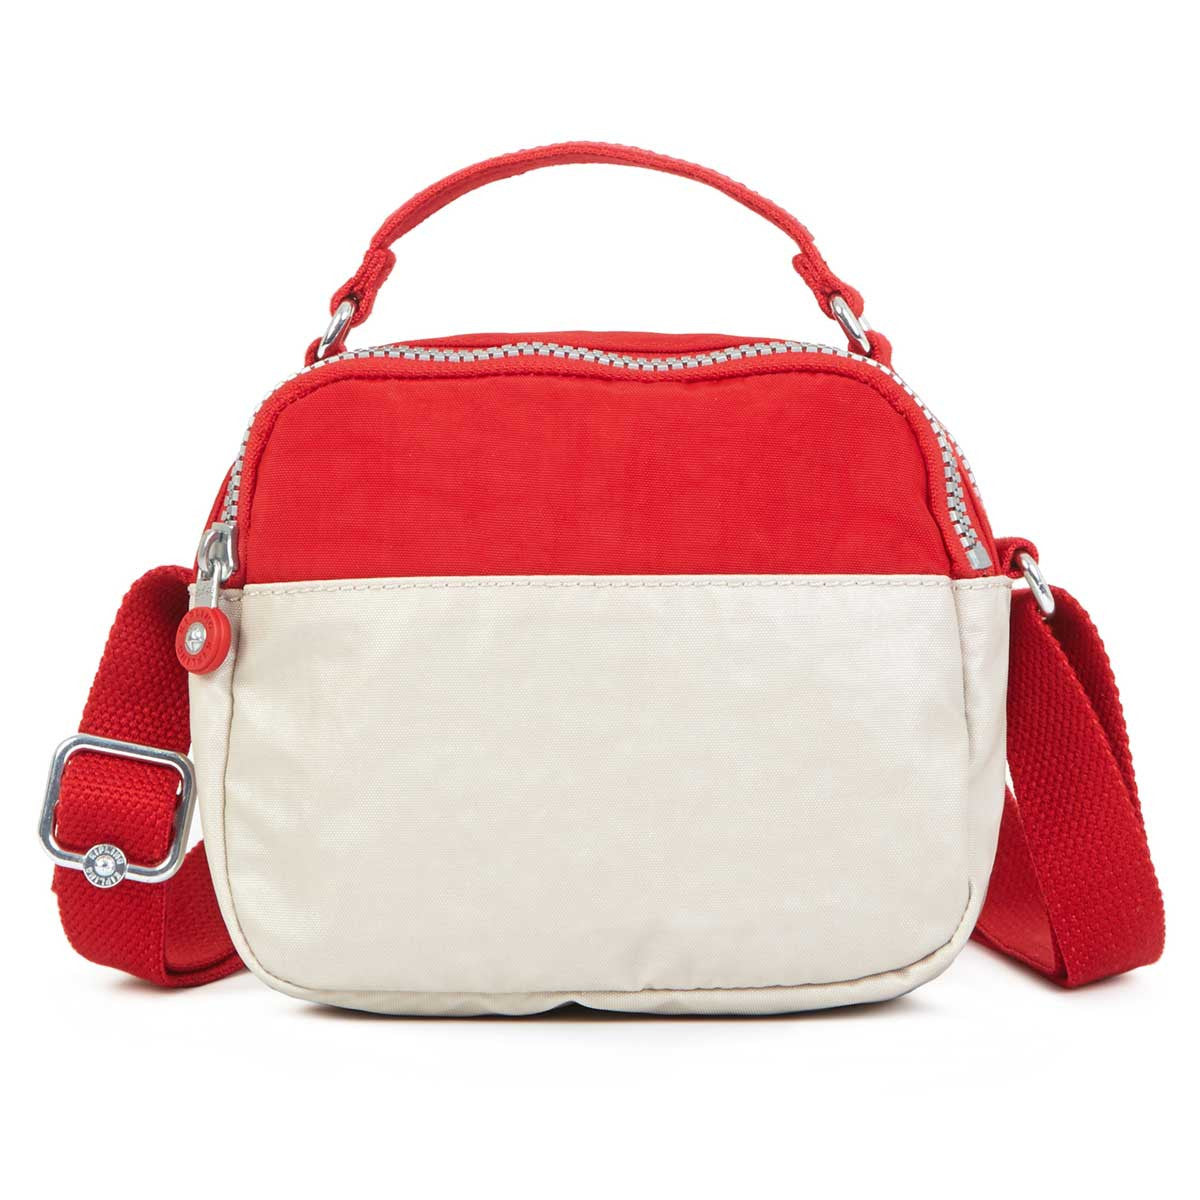 Kipling HB6814-630 Women's Artie Cherry Grey Mix Coated Crinkle Nylon Crossbody Shoulder Bag